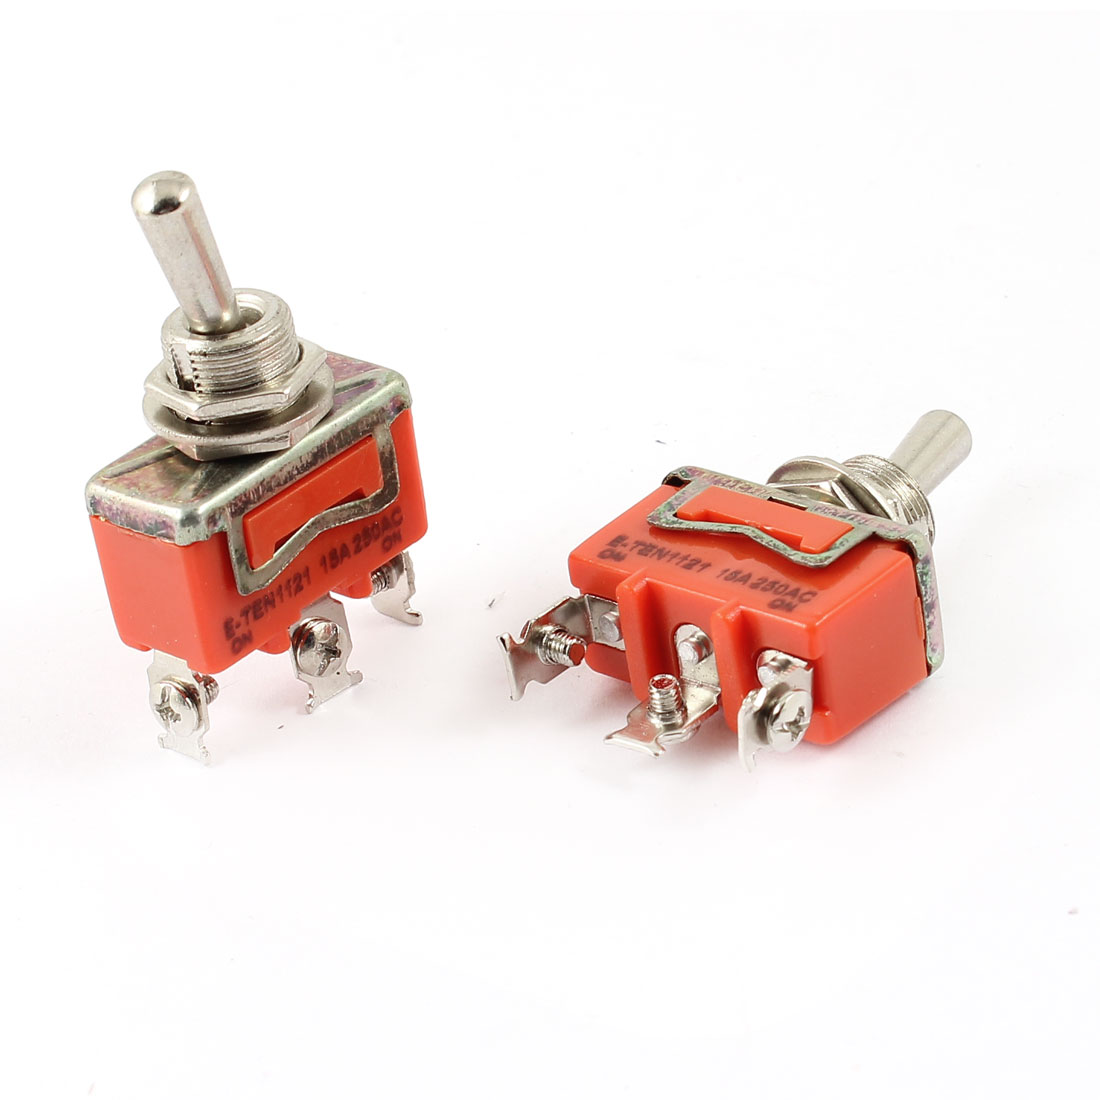 AC 250V 15A ON/ON 2 Position Panel Mounted SPST Latching Toggle Switch 2Pcs